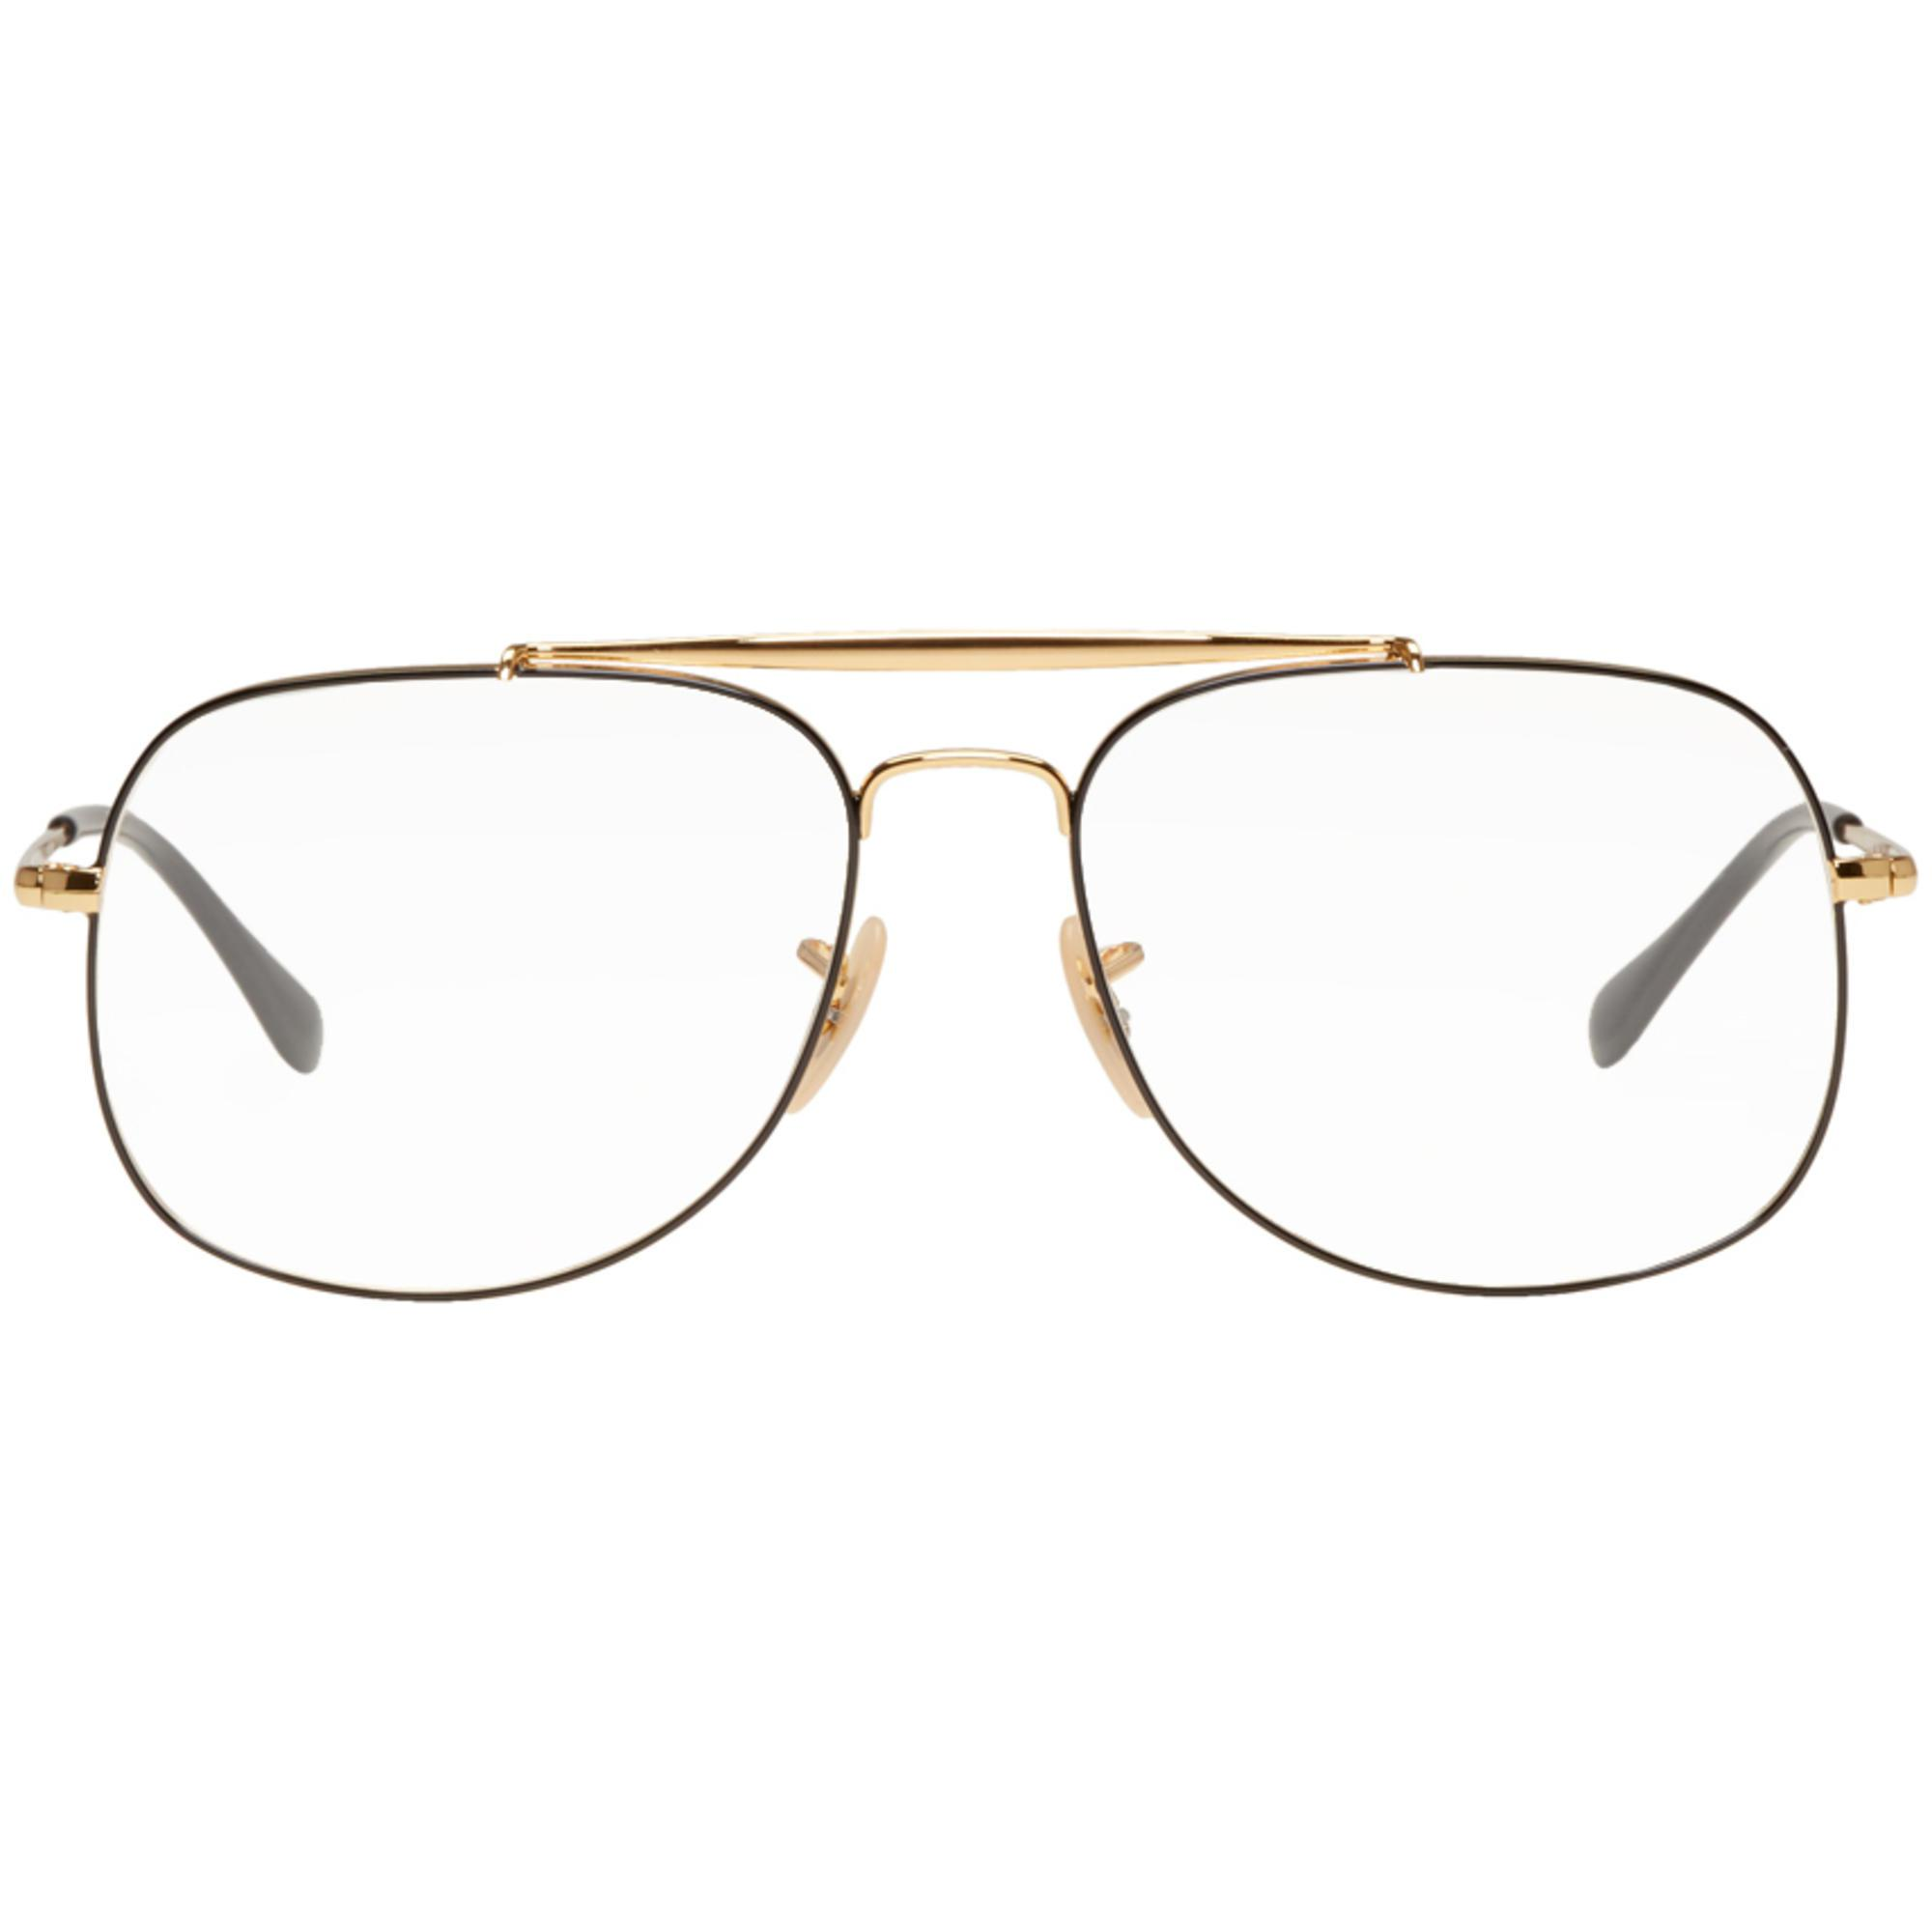 lyst ray ban gold and black icons glasses in metallic for men Pilot Aviator Sunglasses gallery